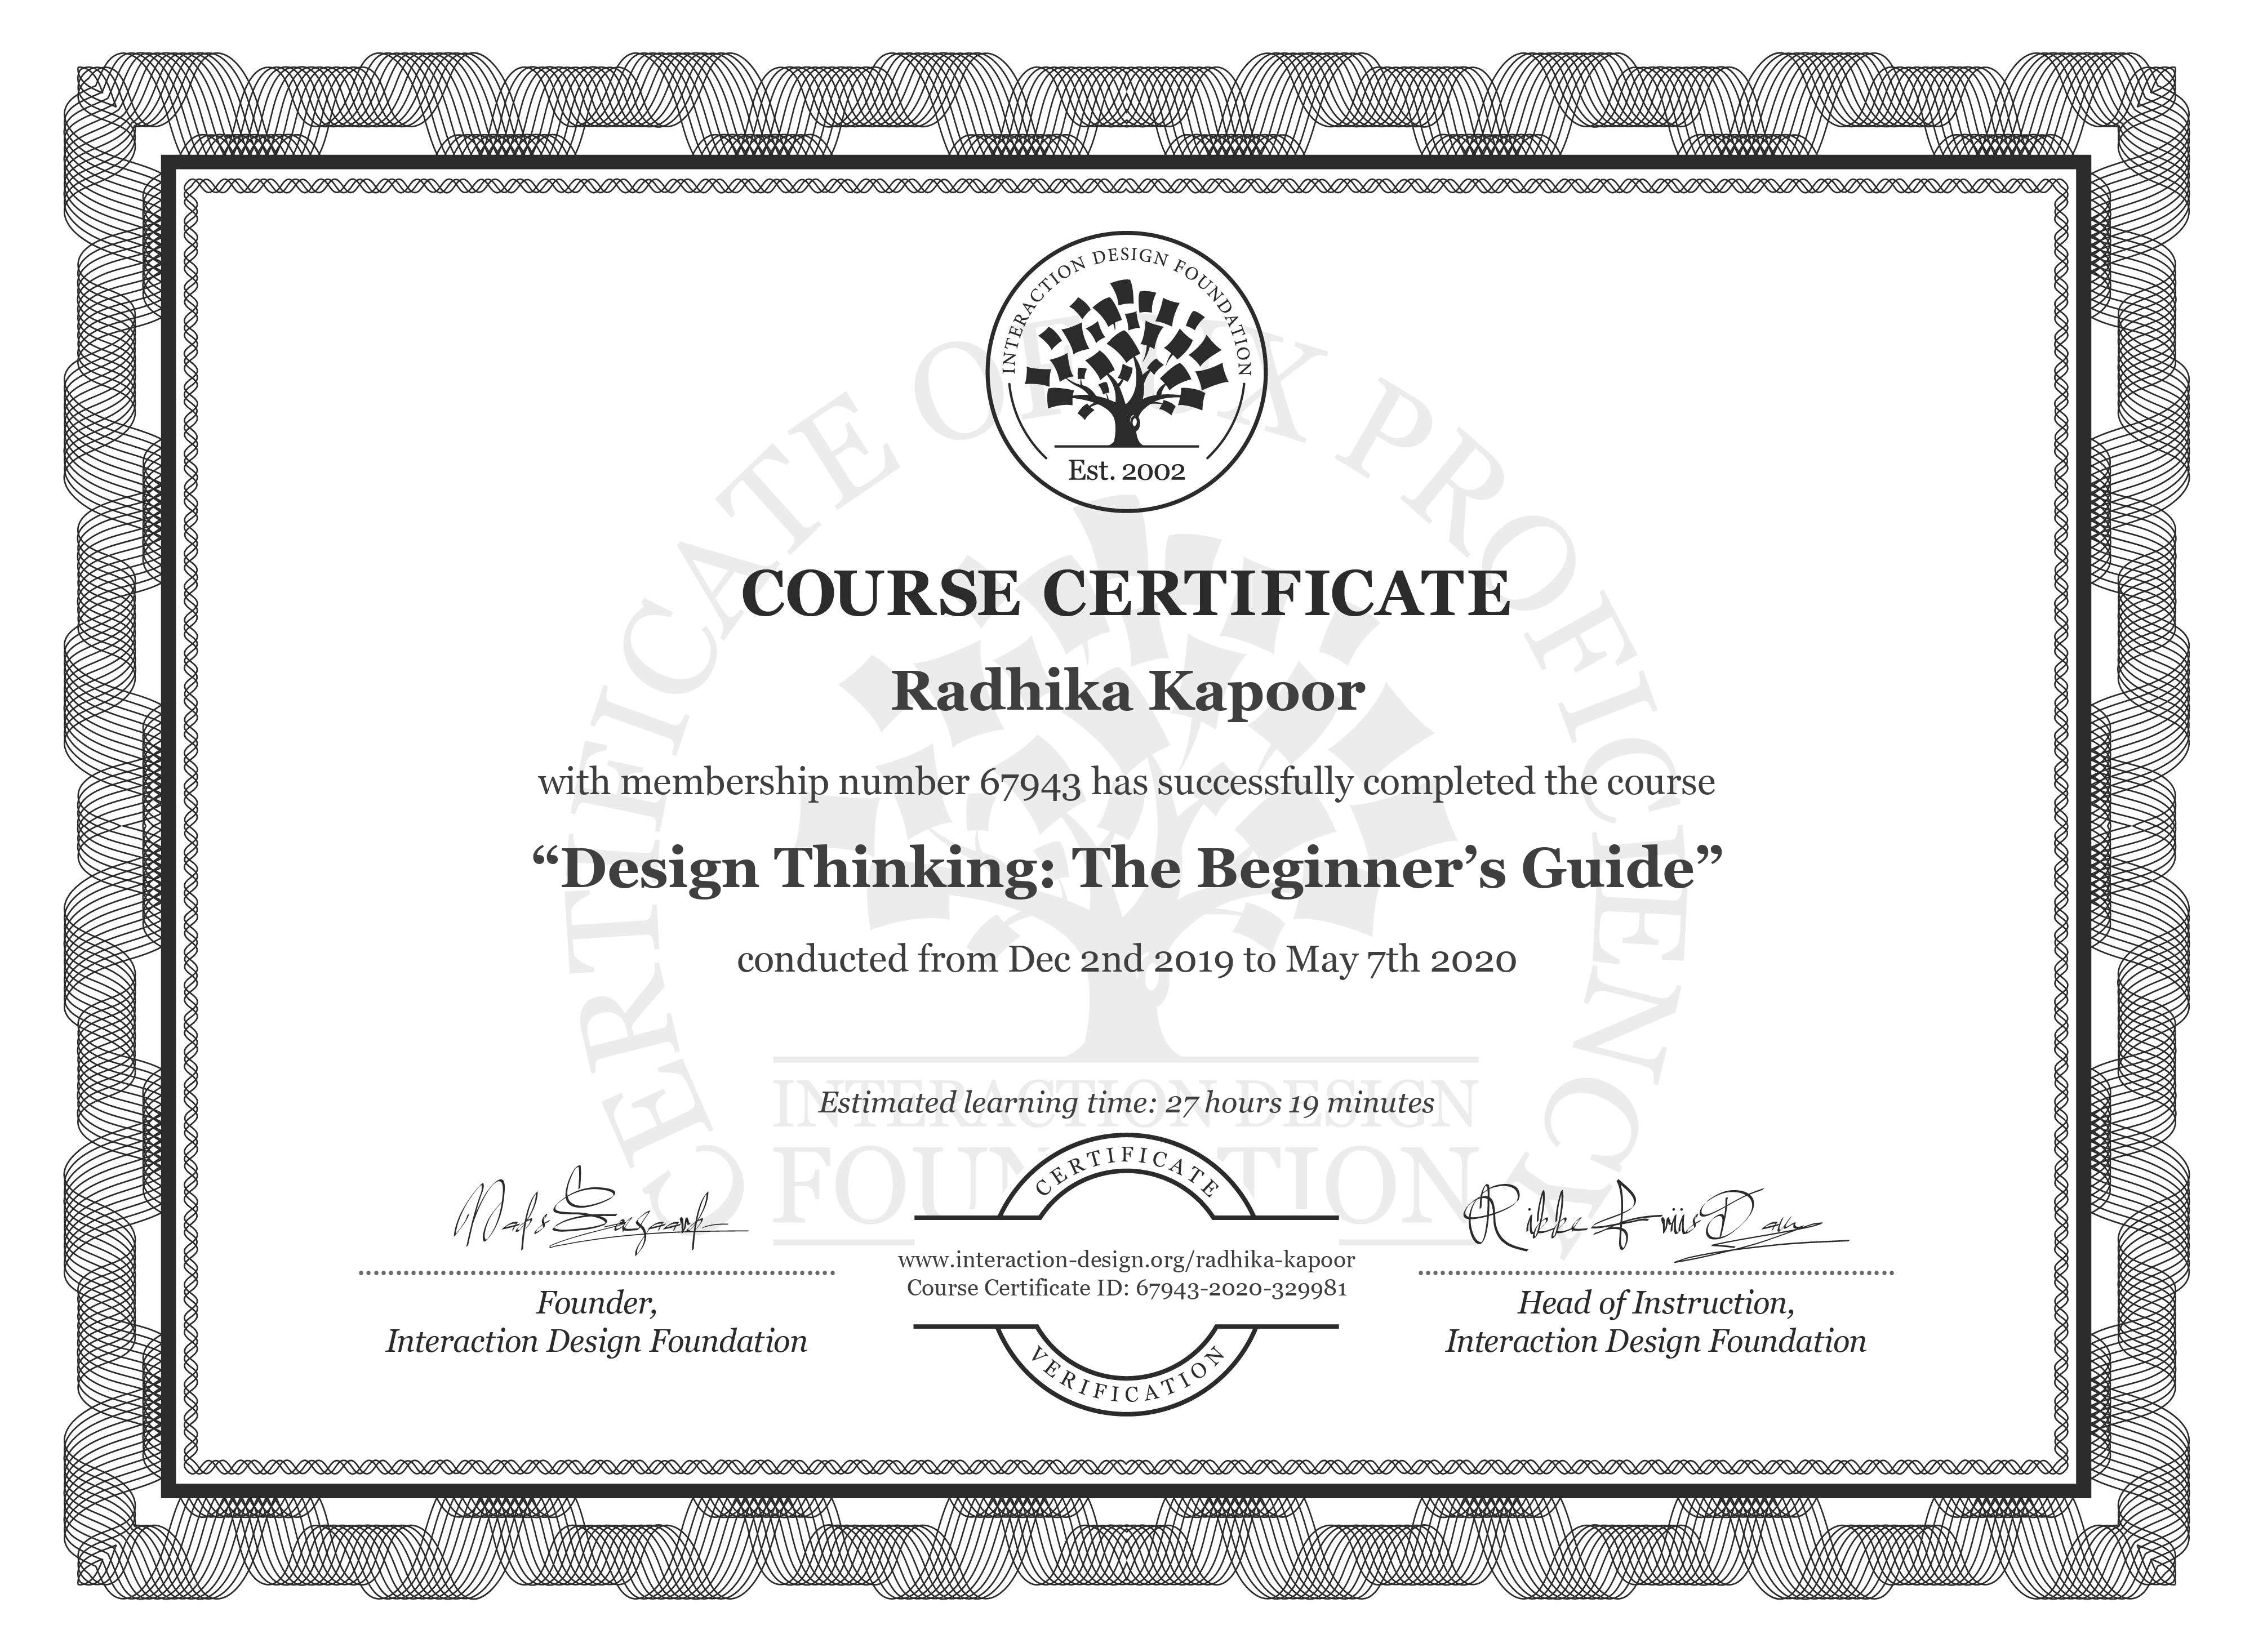 Radhika Kapoor's Course Certificate: Design Thinking: The Beginner's Guide